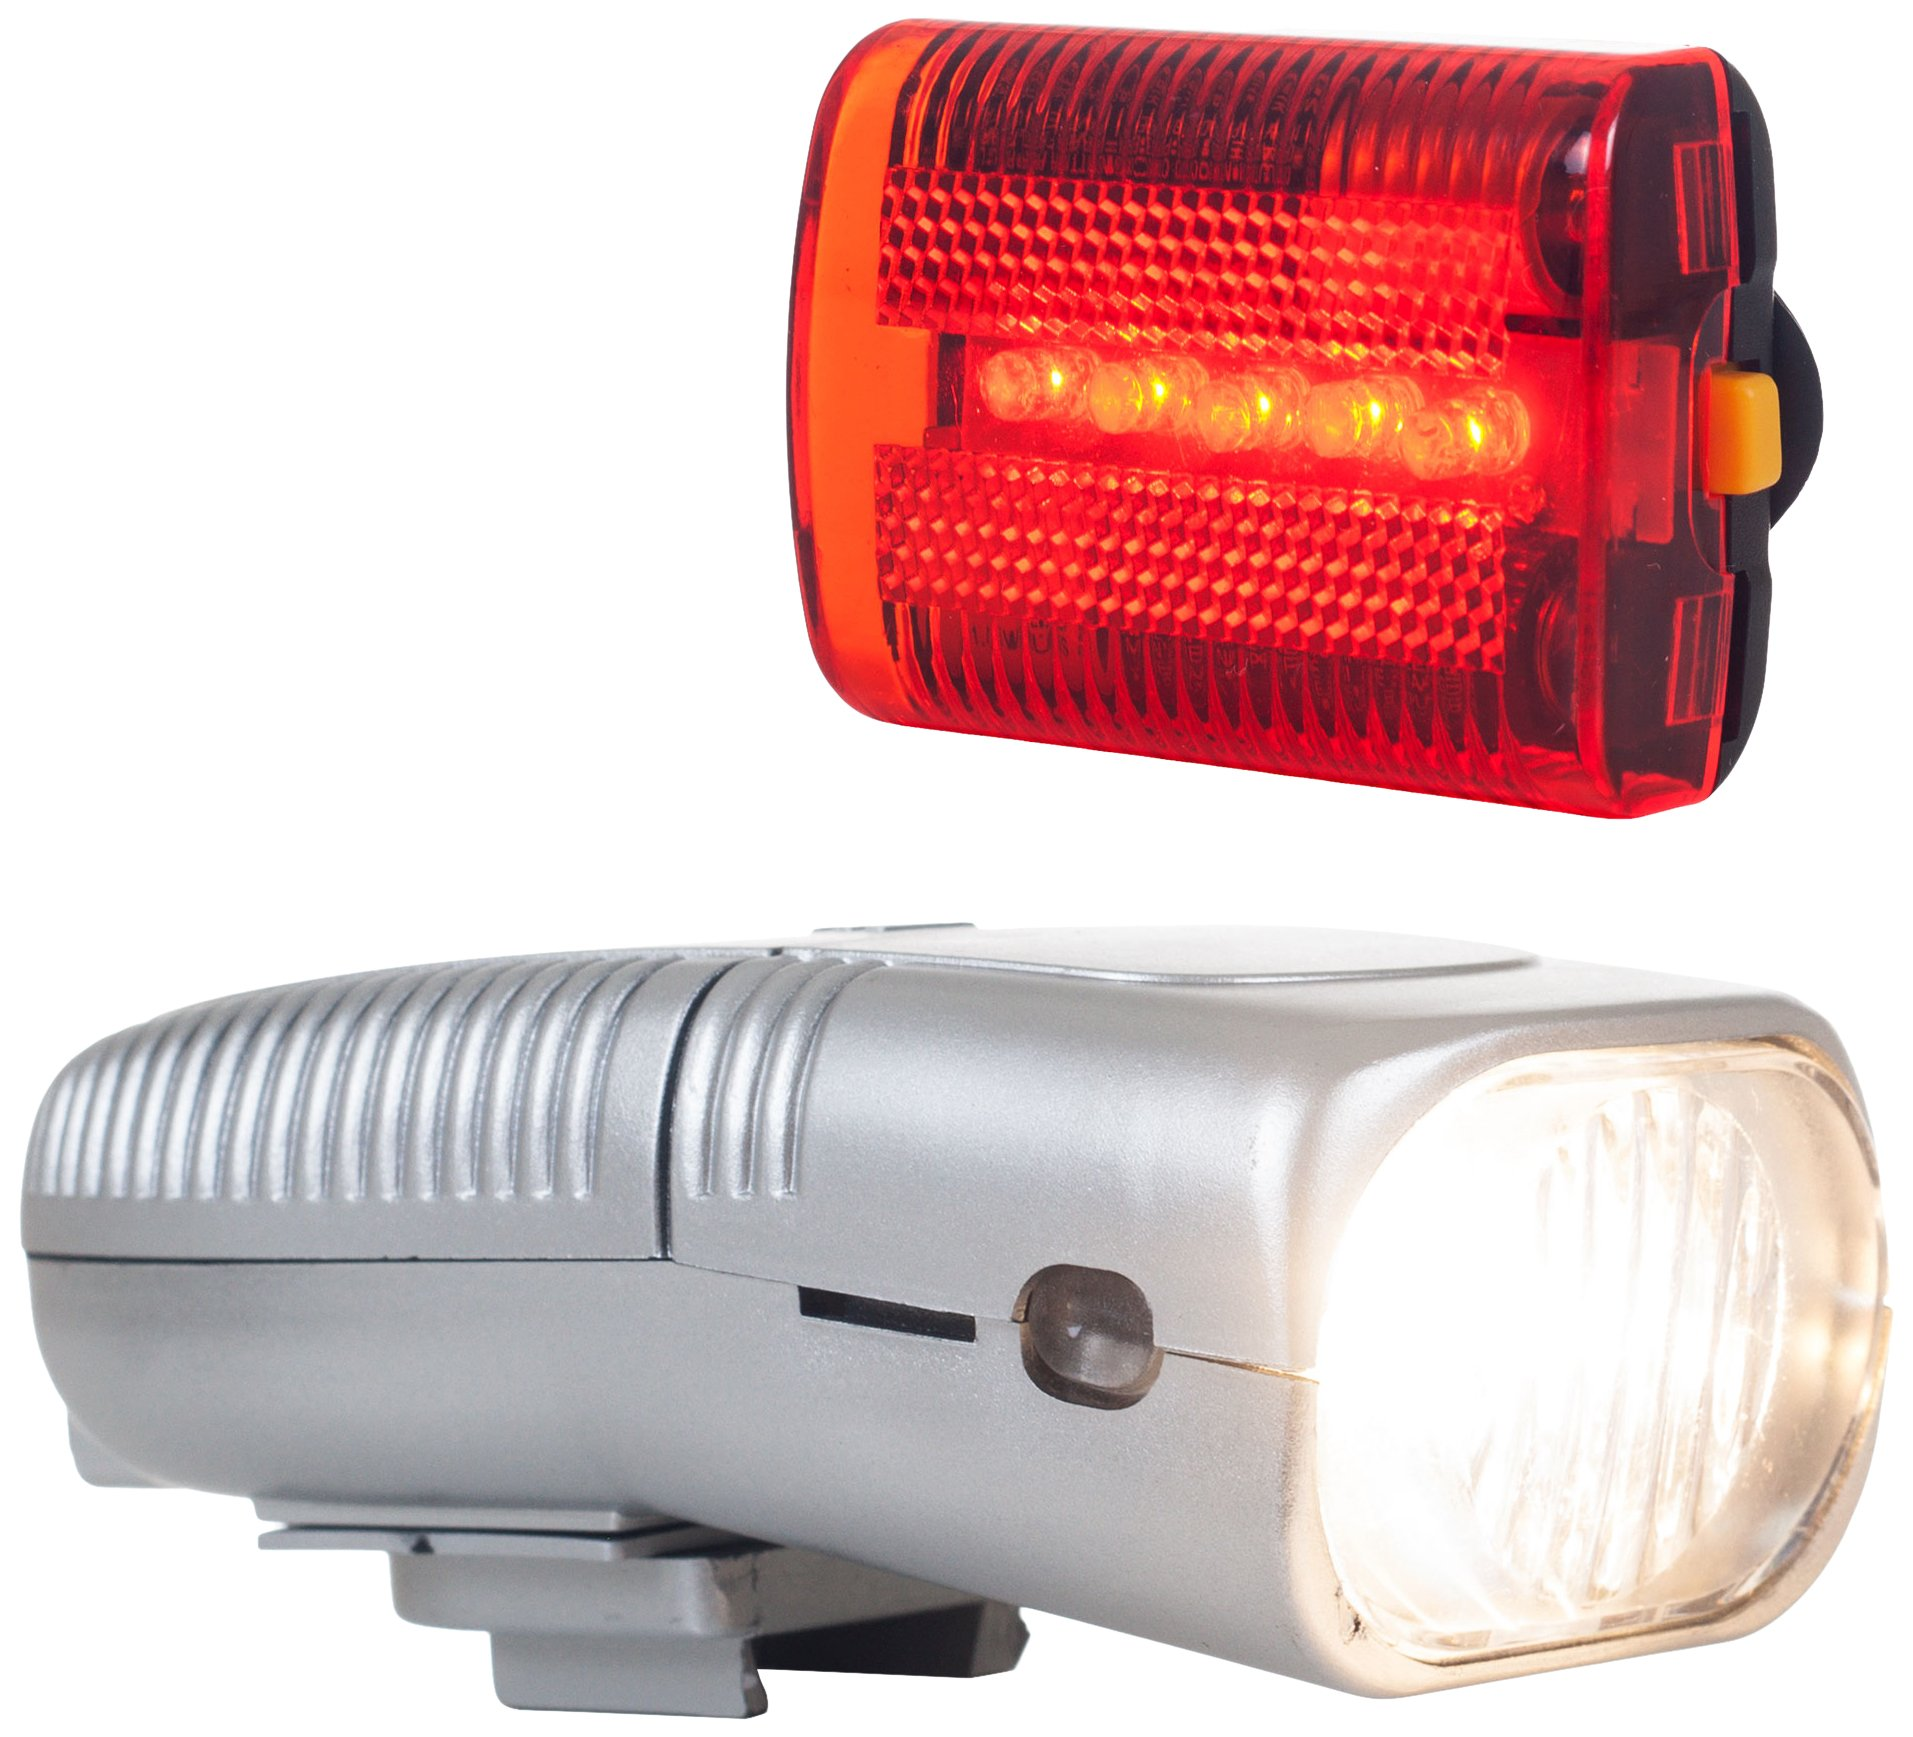 Whetstone Cutlery 75-275-A Bike Safety Bicycle Headlight and Taillight Set